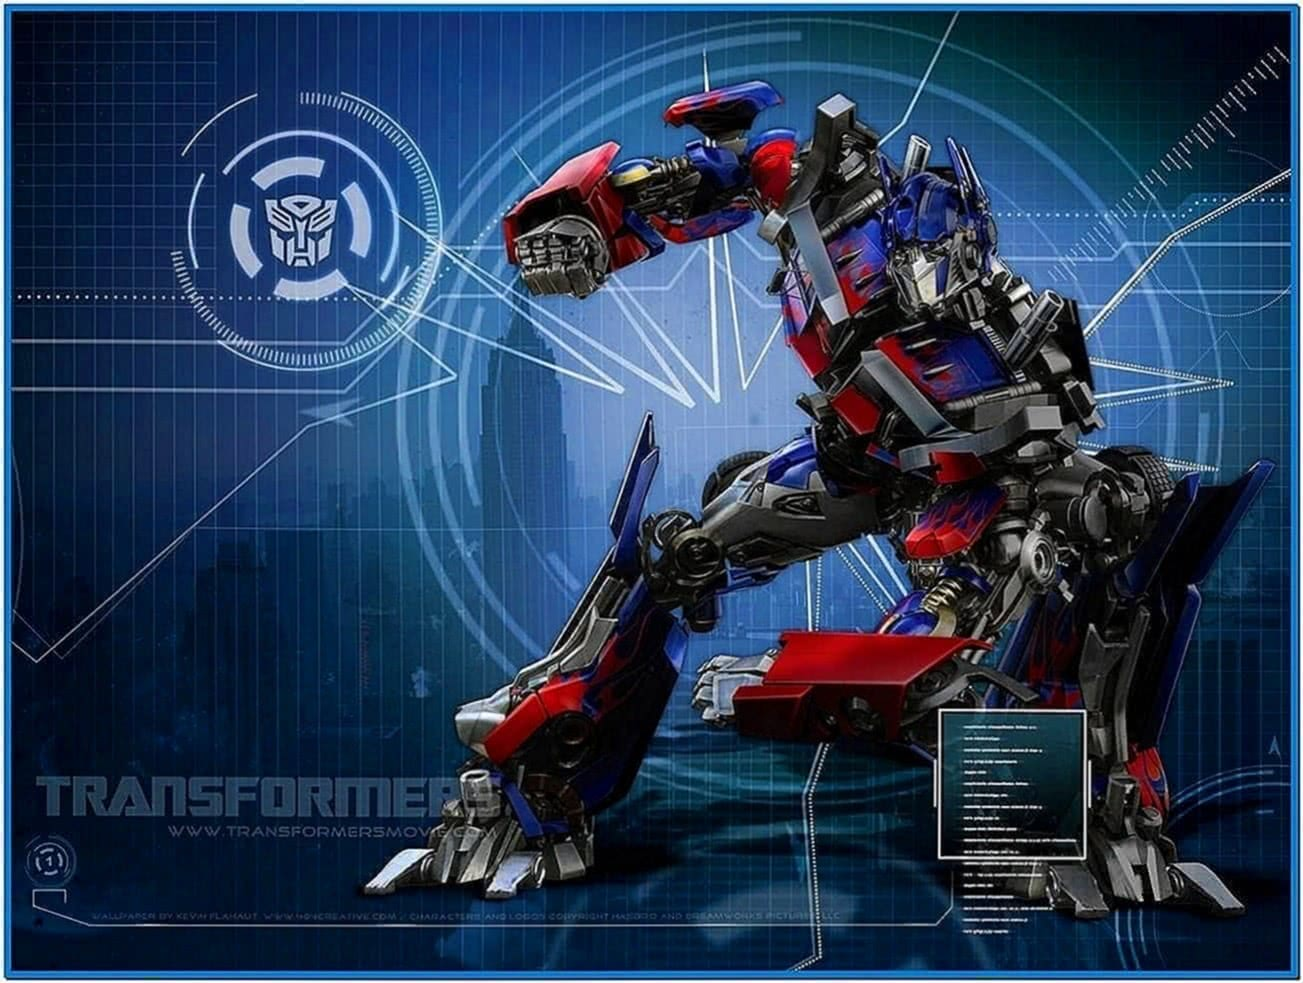 Screensaver Transformers 2